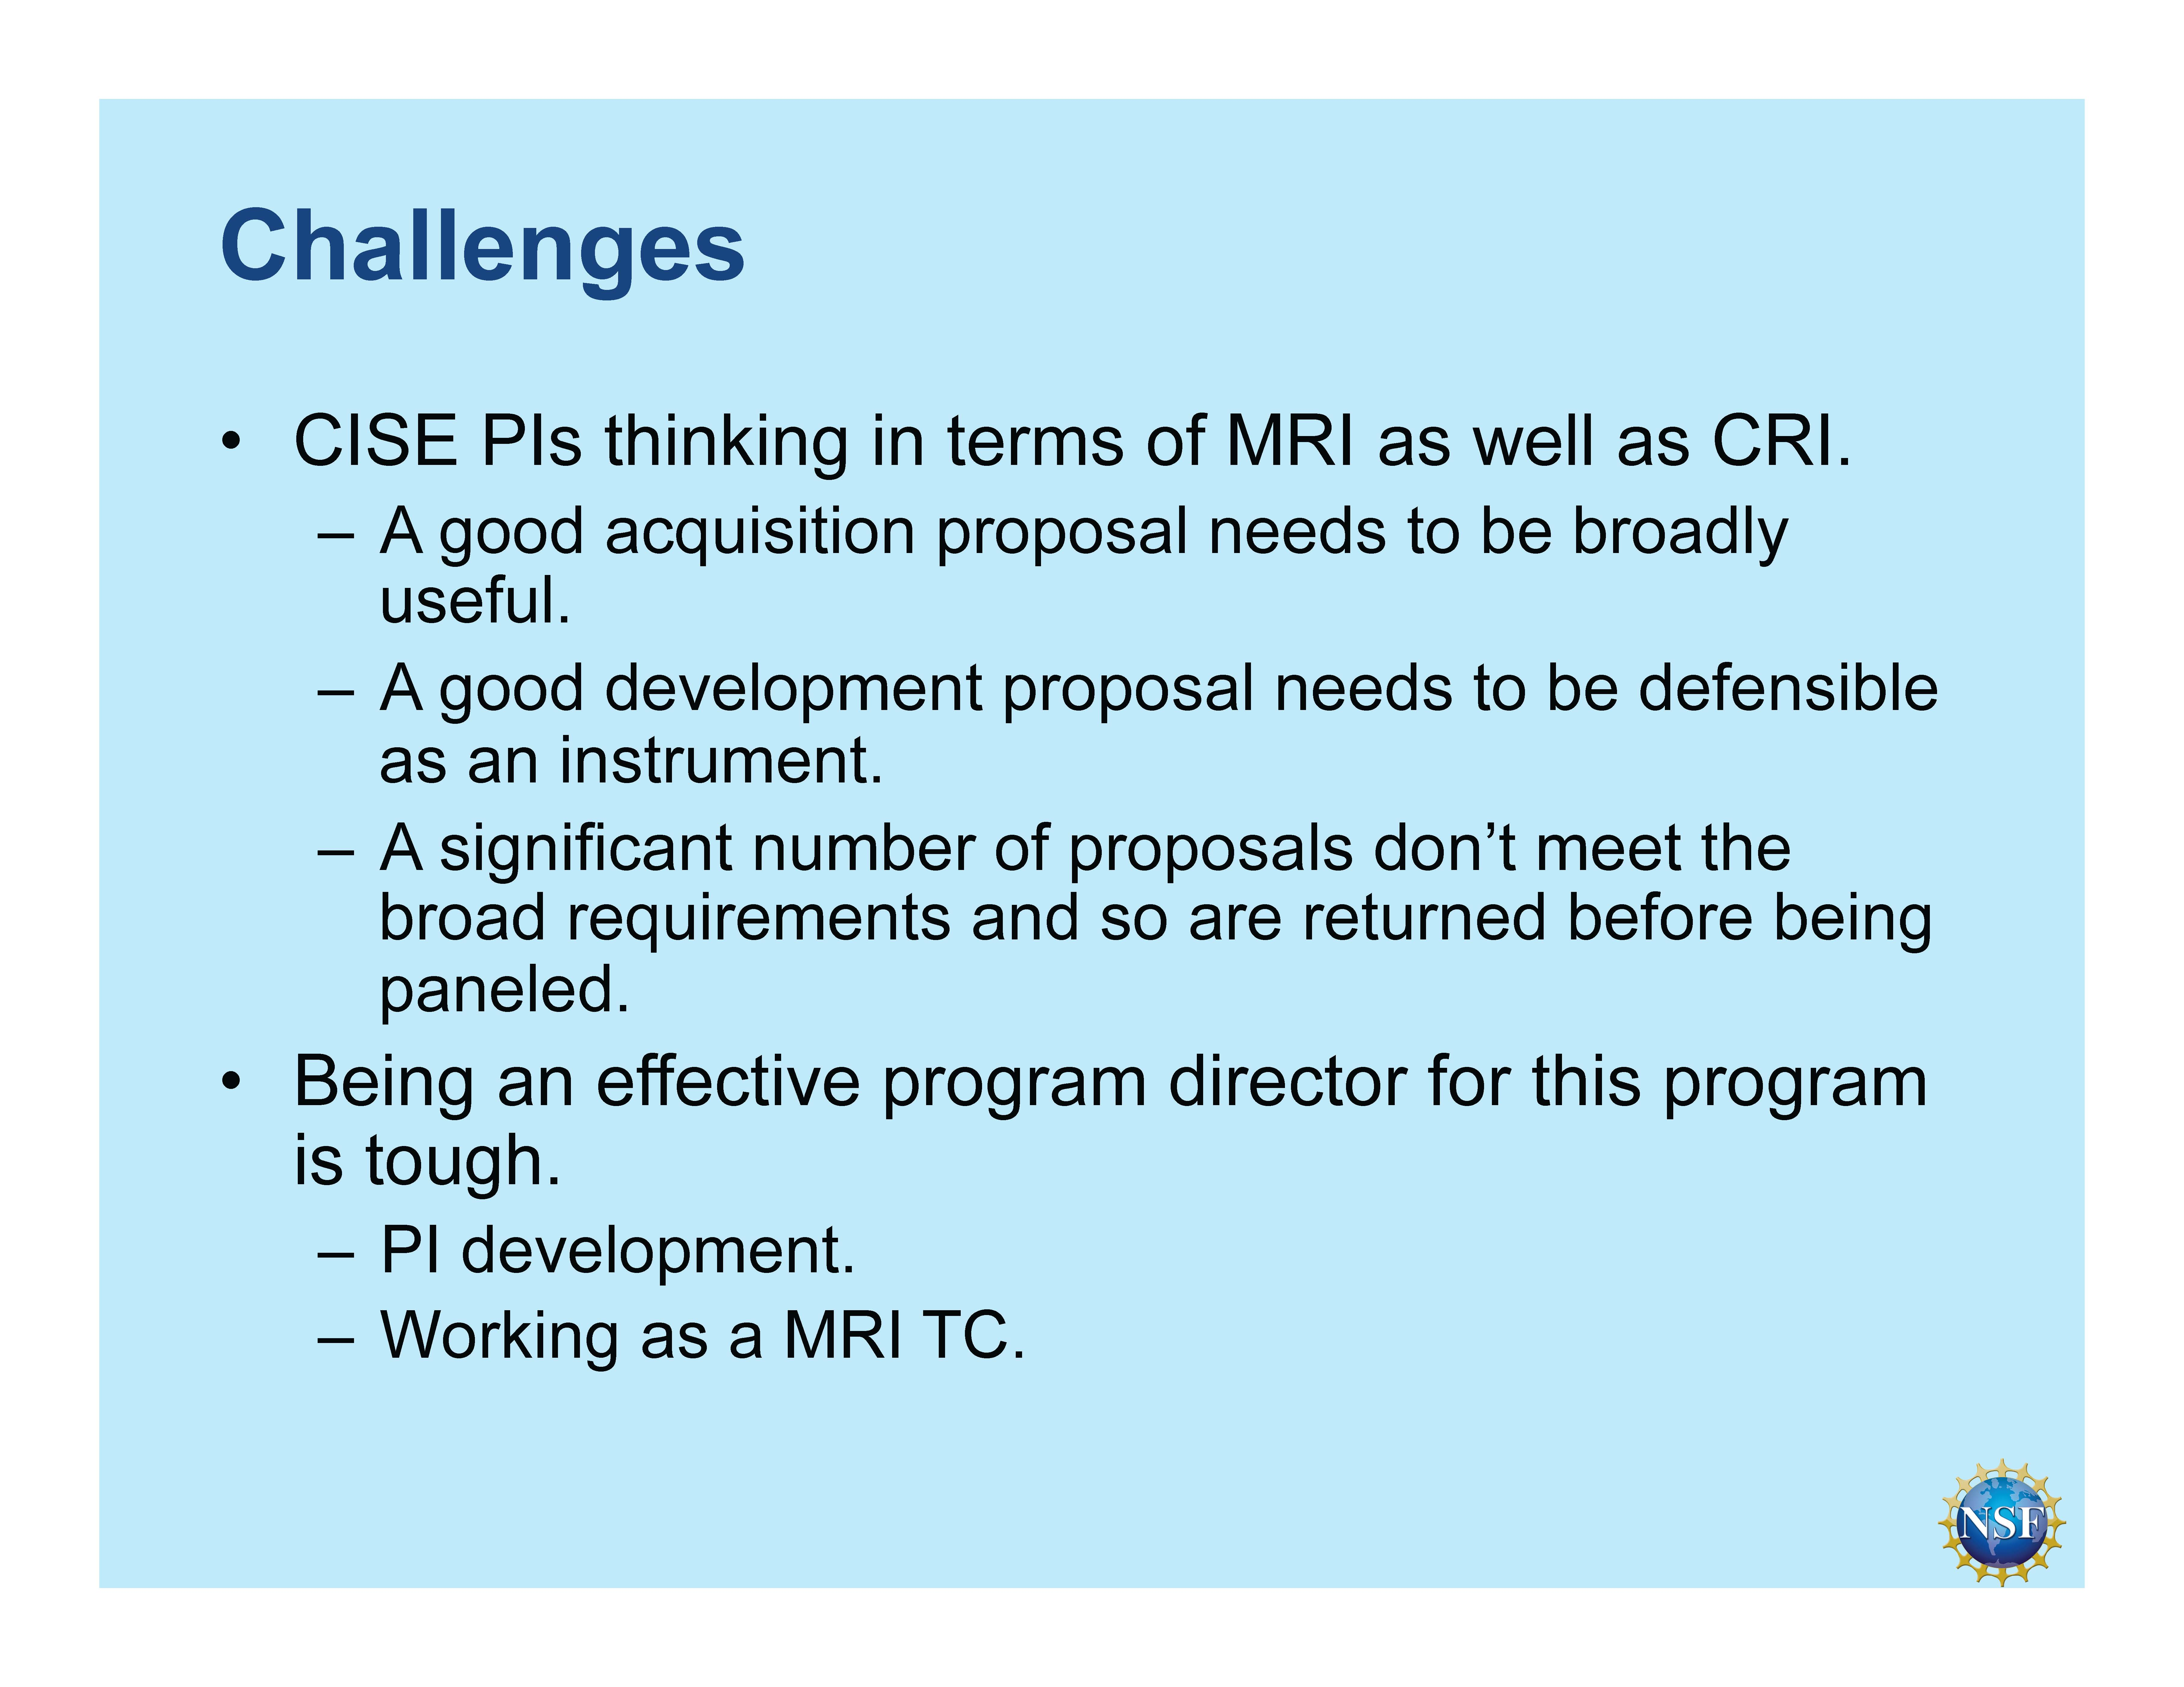 MRI and CRI, as presented to the NSF/CISE Advisory Committee [image courtesy NSF].